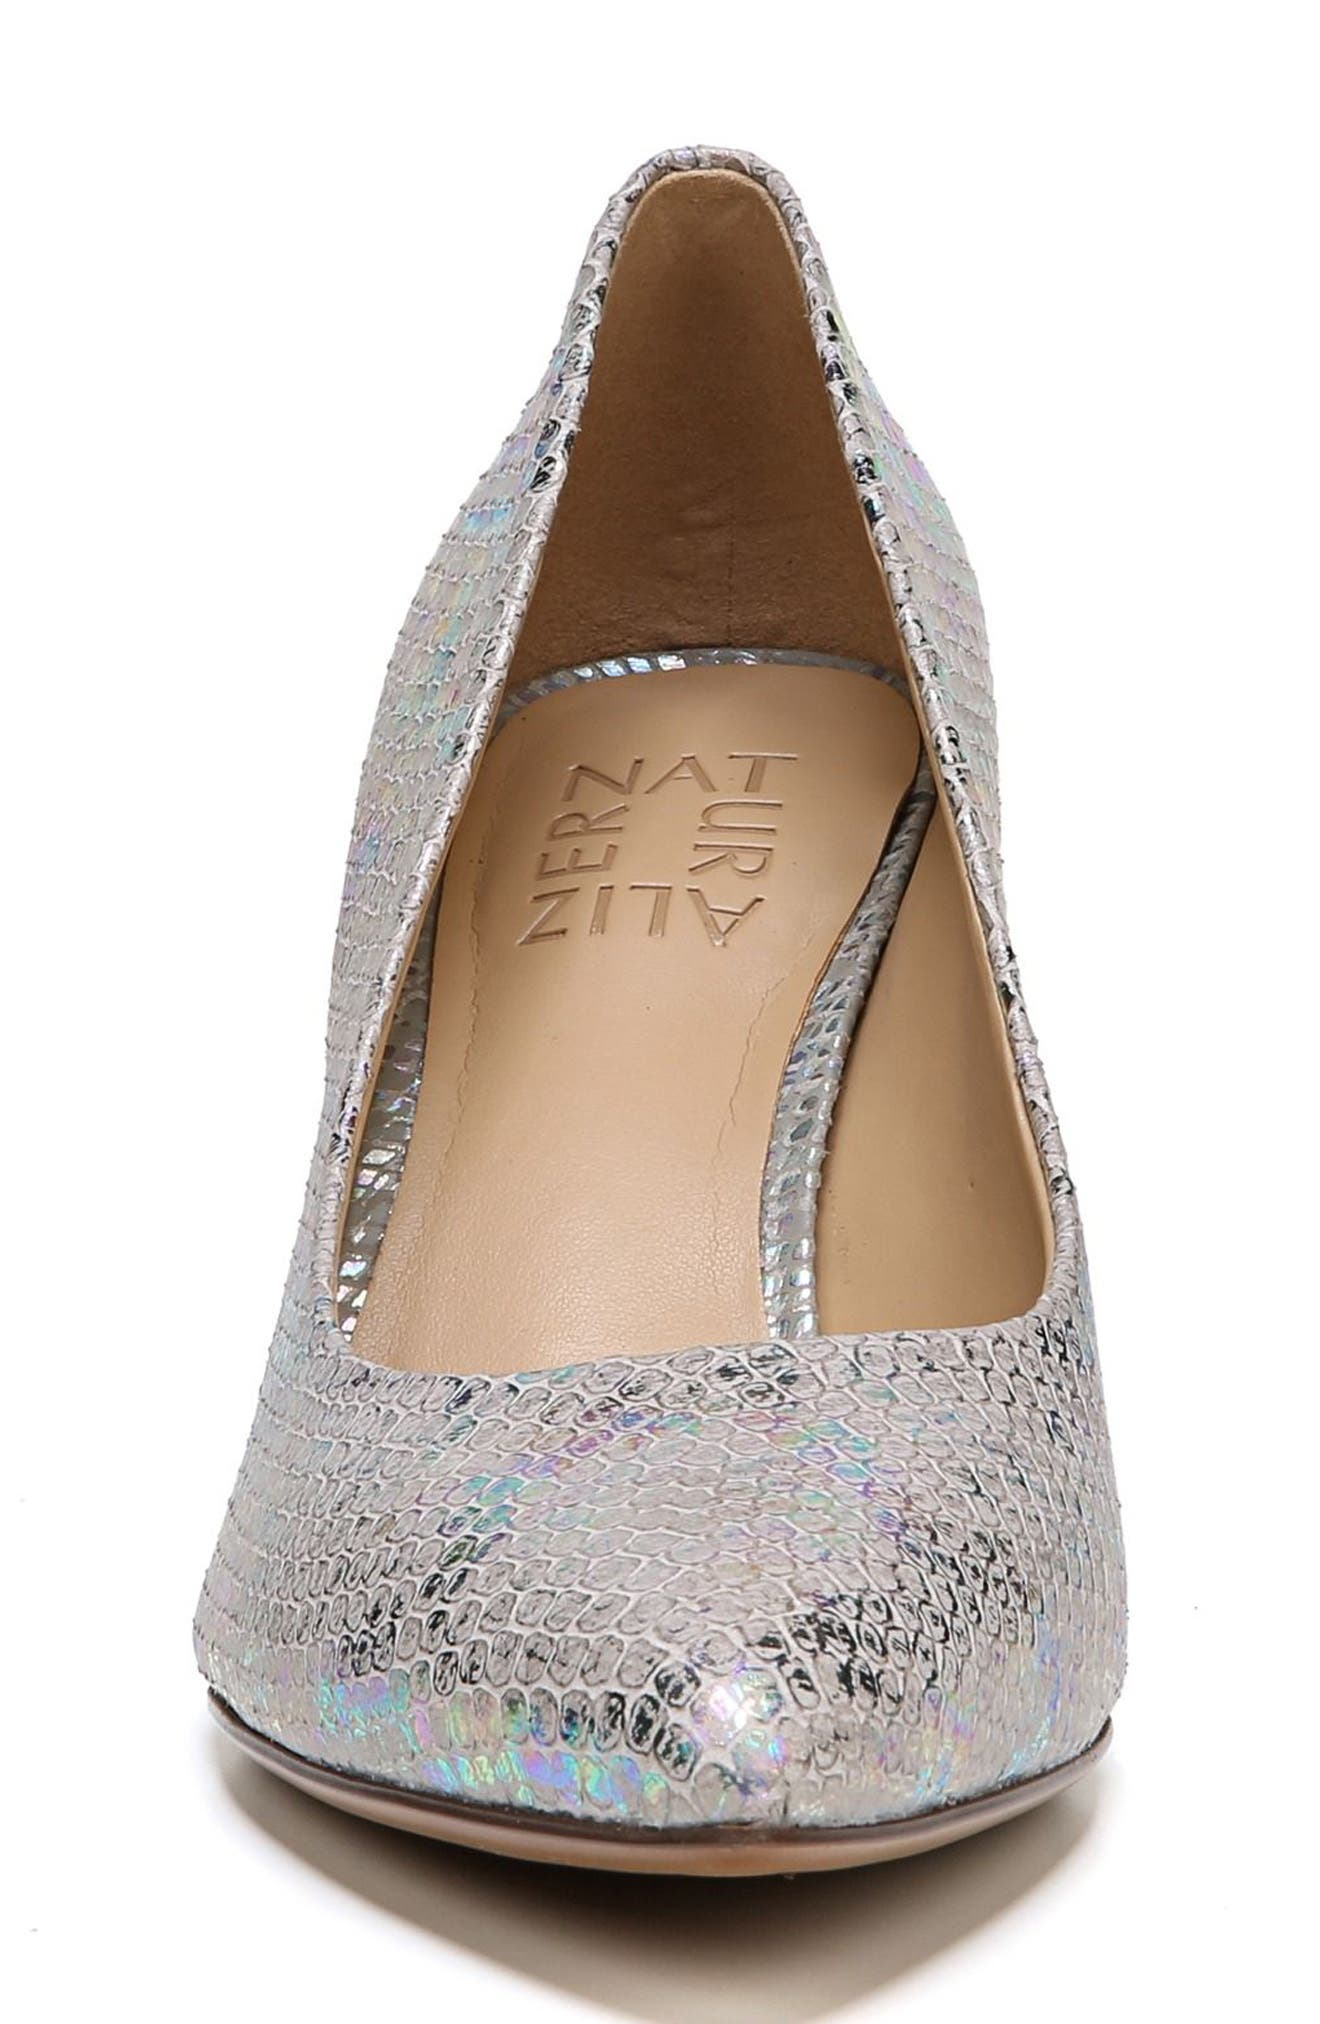 Natalie Pointy Toe Pump,                             Alternate thumbnail 4, color,                             Silver Snake Print Leather